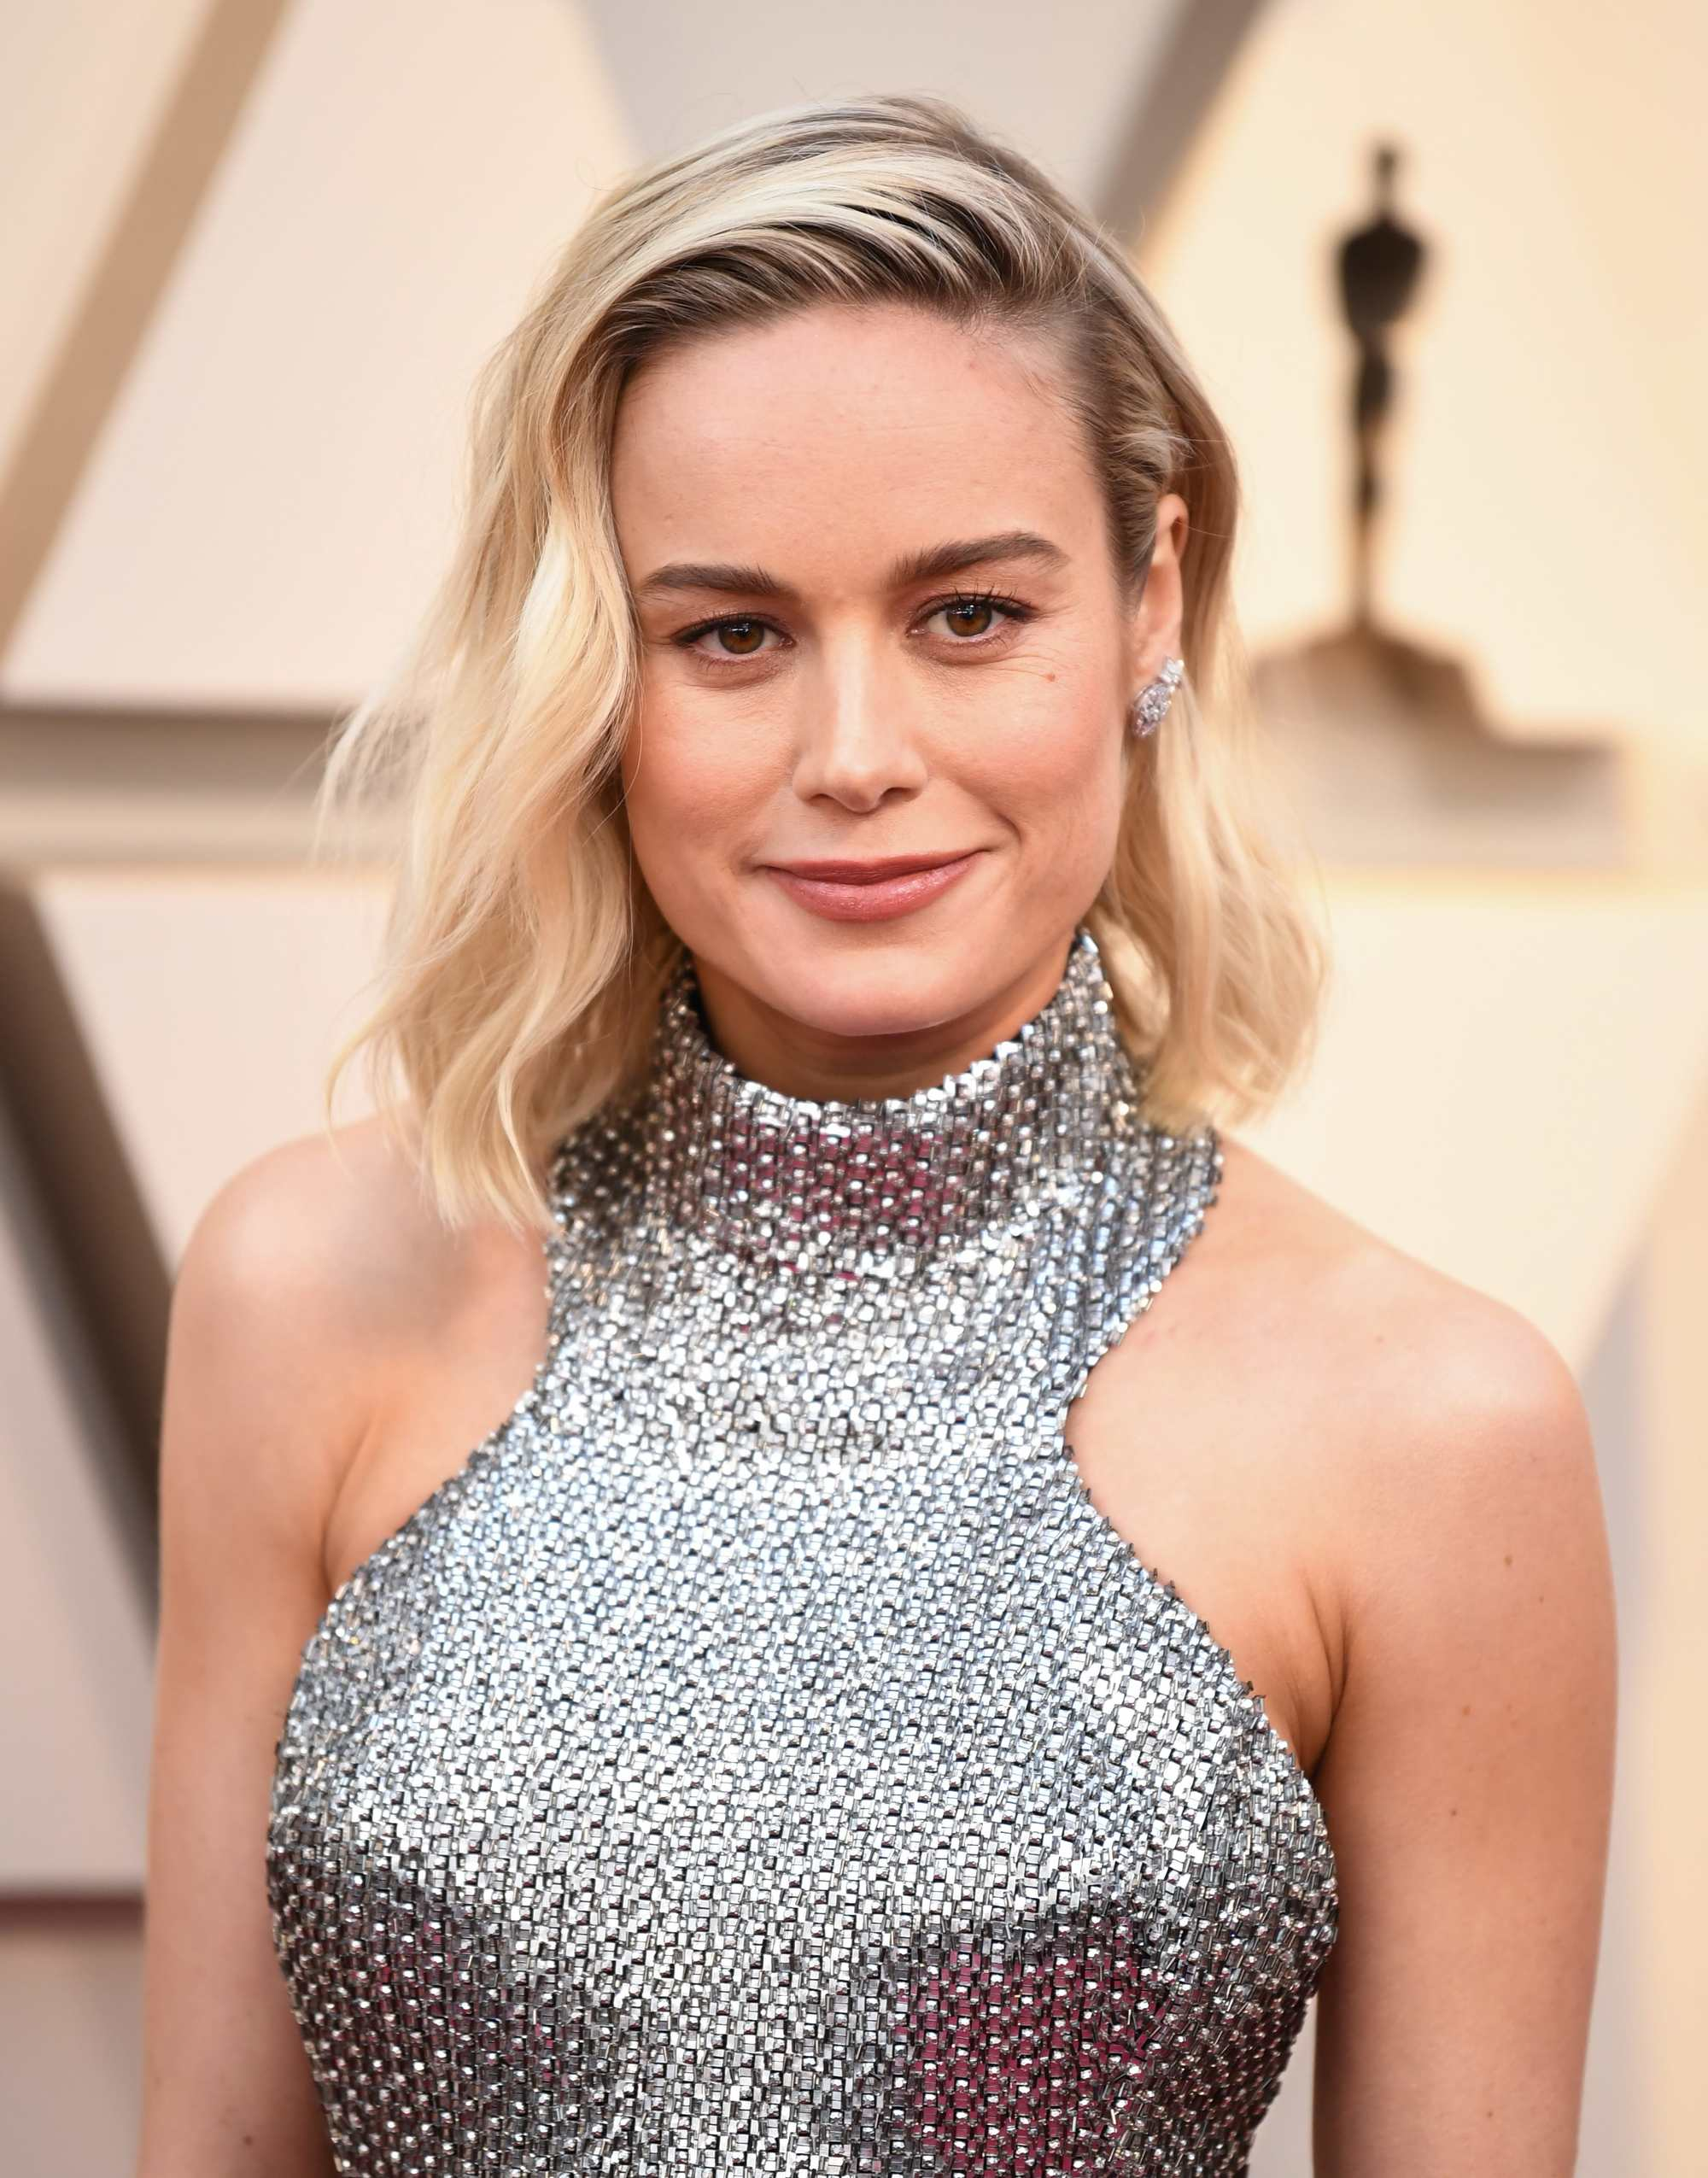 Oscars 2019 hairstyles: Brie Larson at the 2019 Oscars with platinum blonde hair styled in a side-parted tousled wavy lob, wearing a halterneck sparkly silver dress